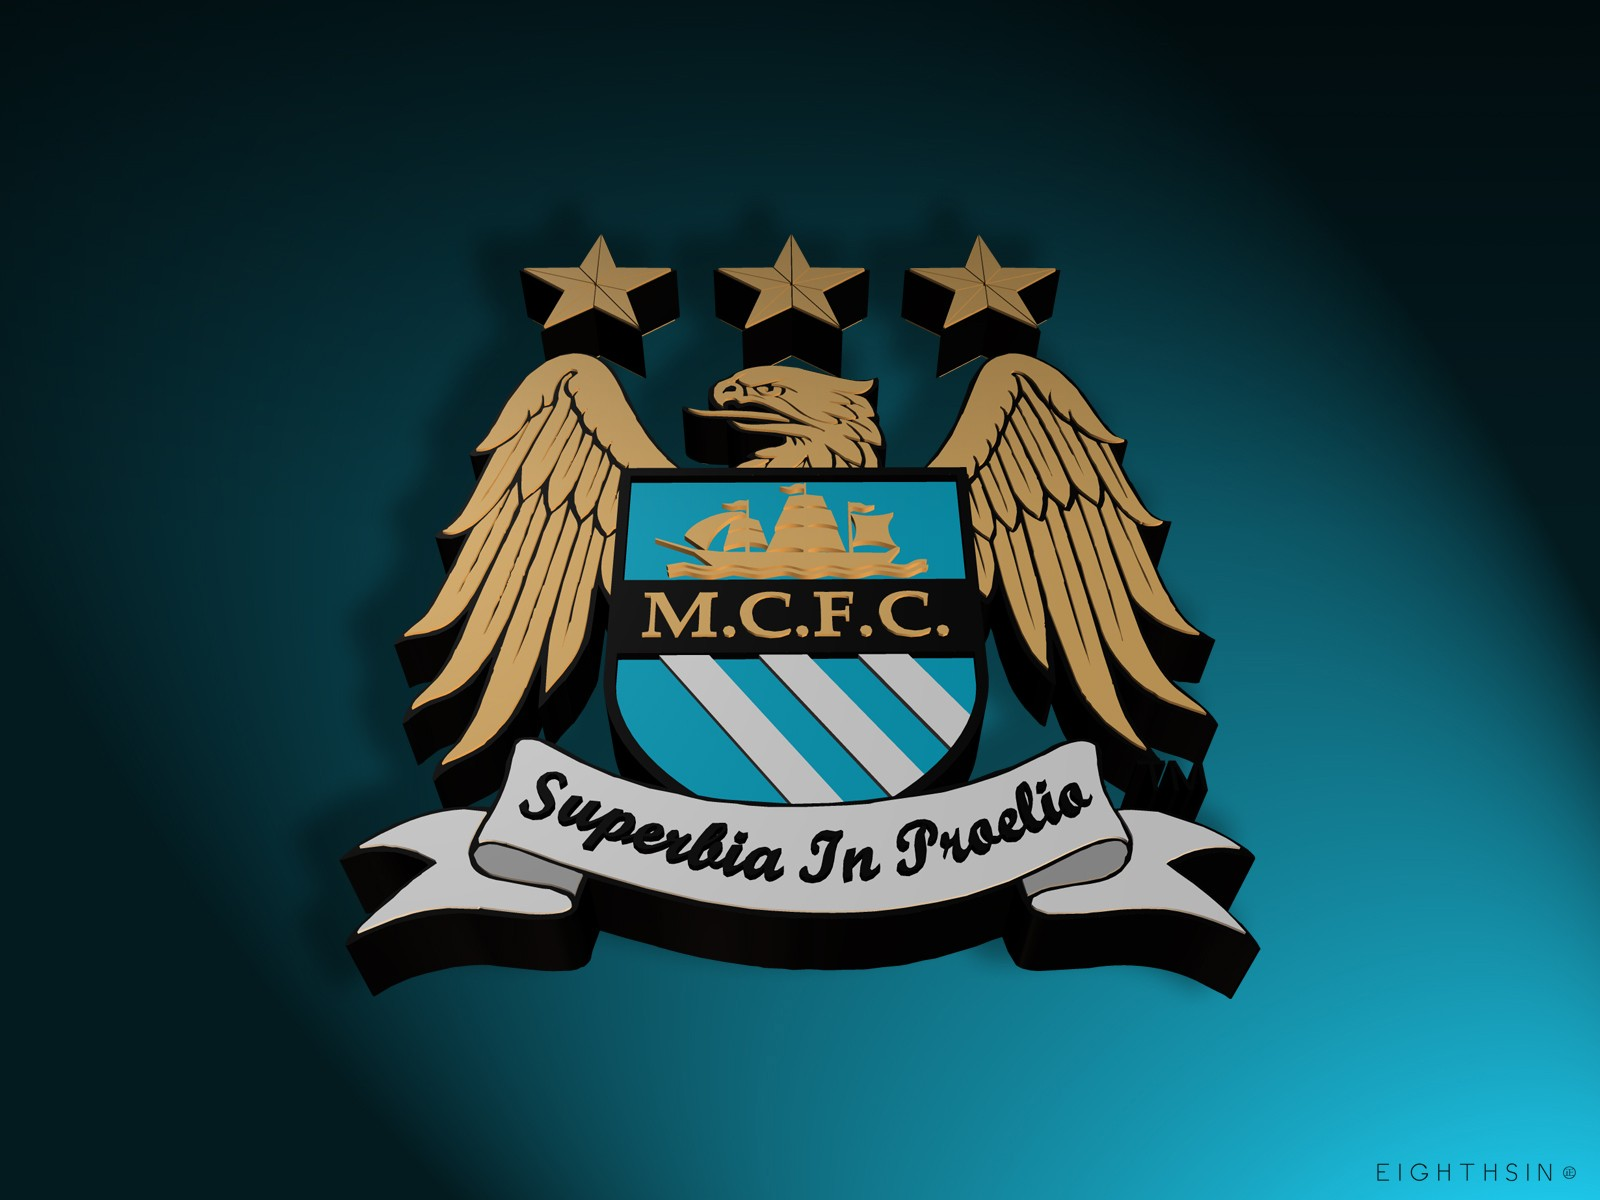 Manchester City Superbia In Proelia Wallpaper